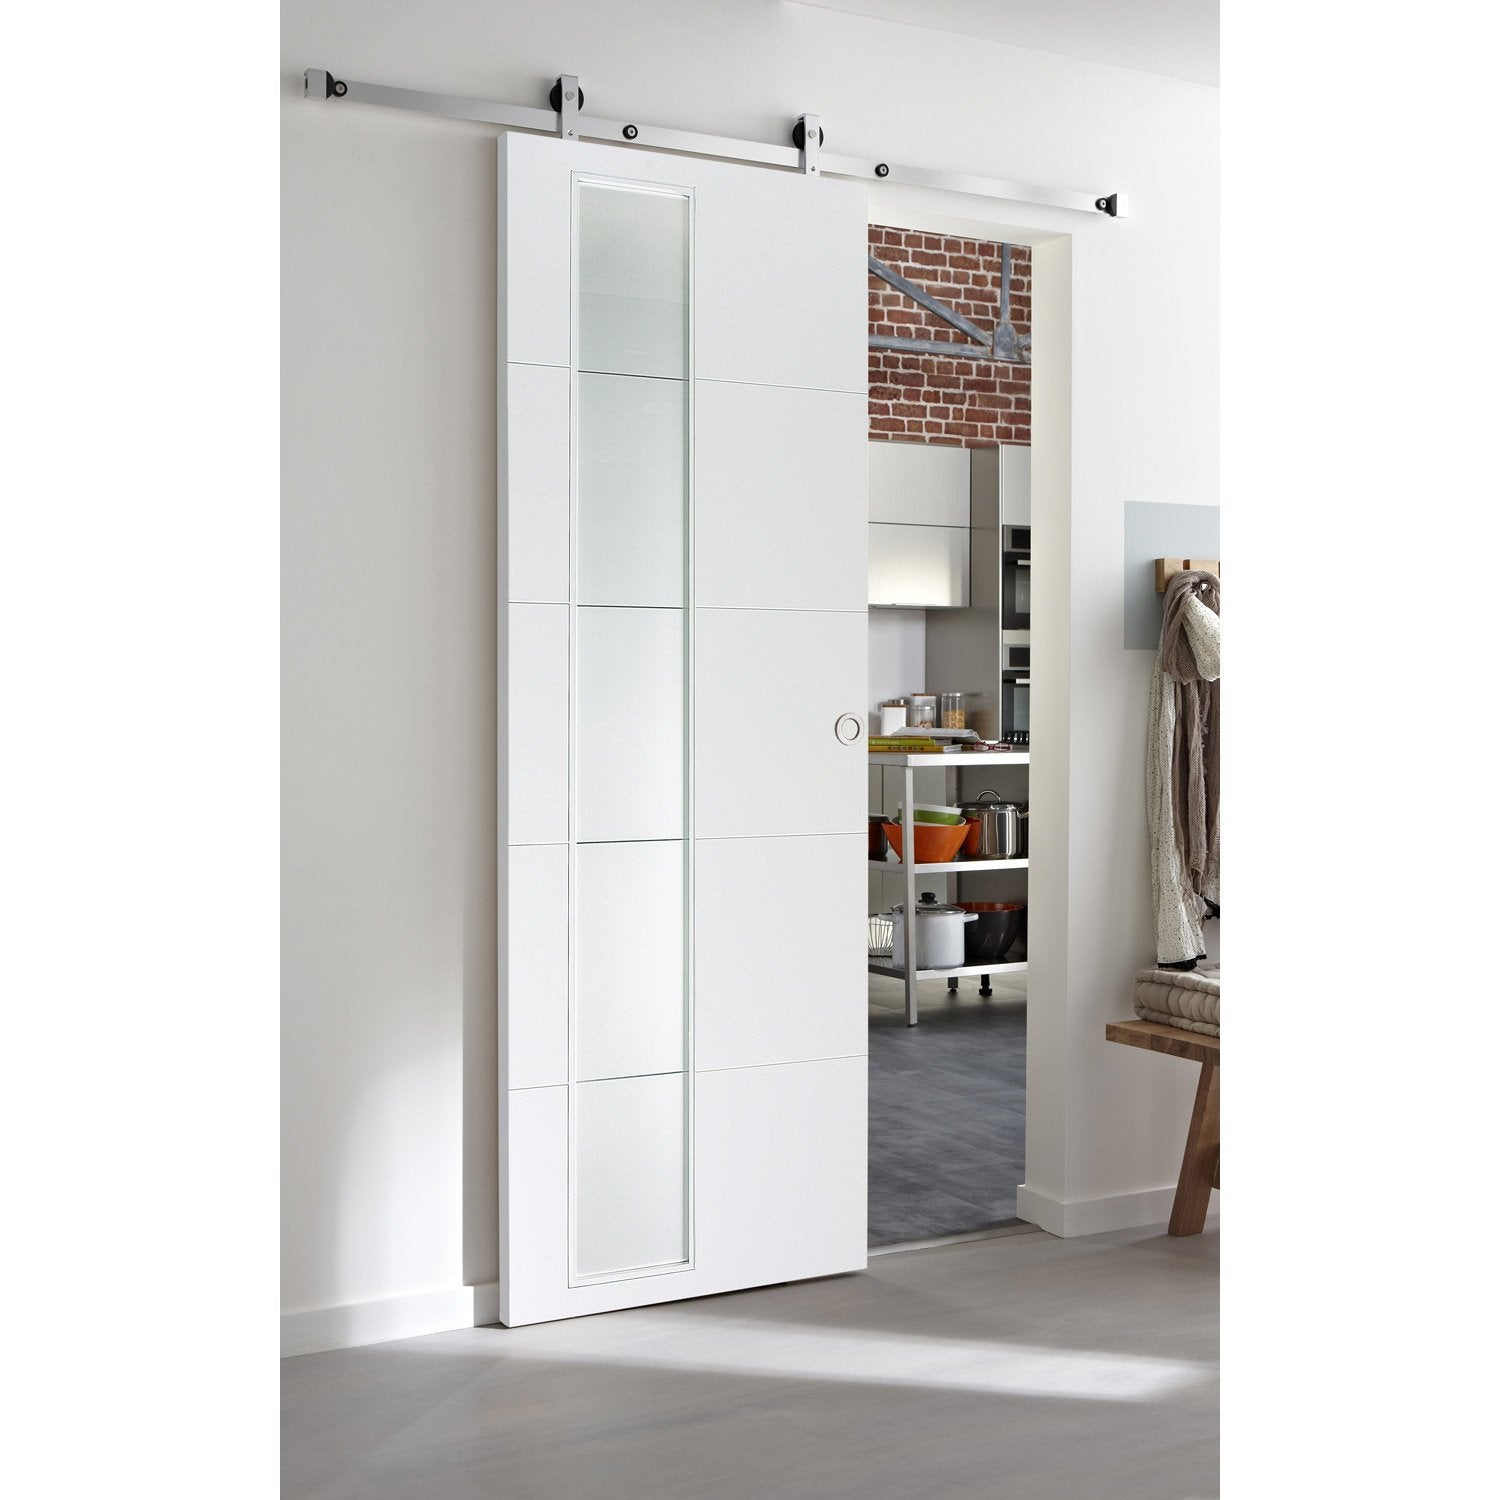 Ensemble porte coulissante alaska mdf laqu avec le rail for Porte extensible leroy merlin